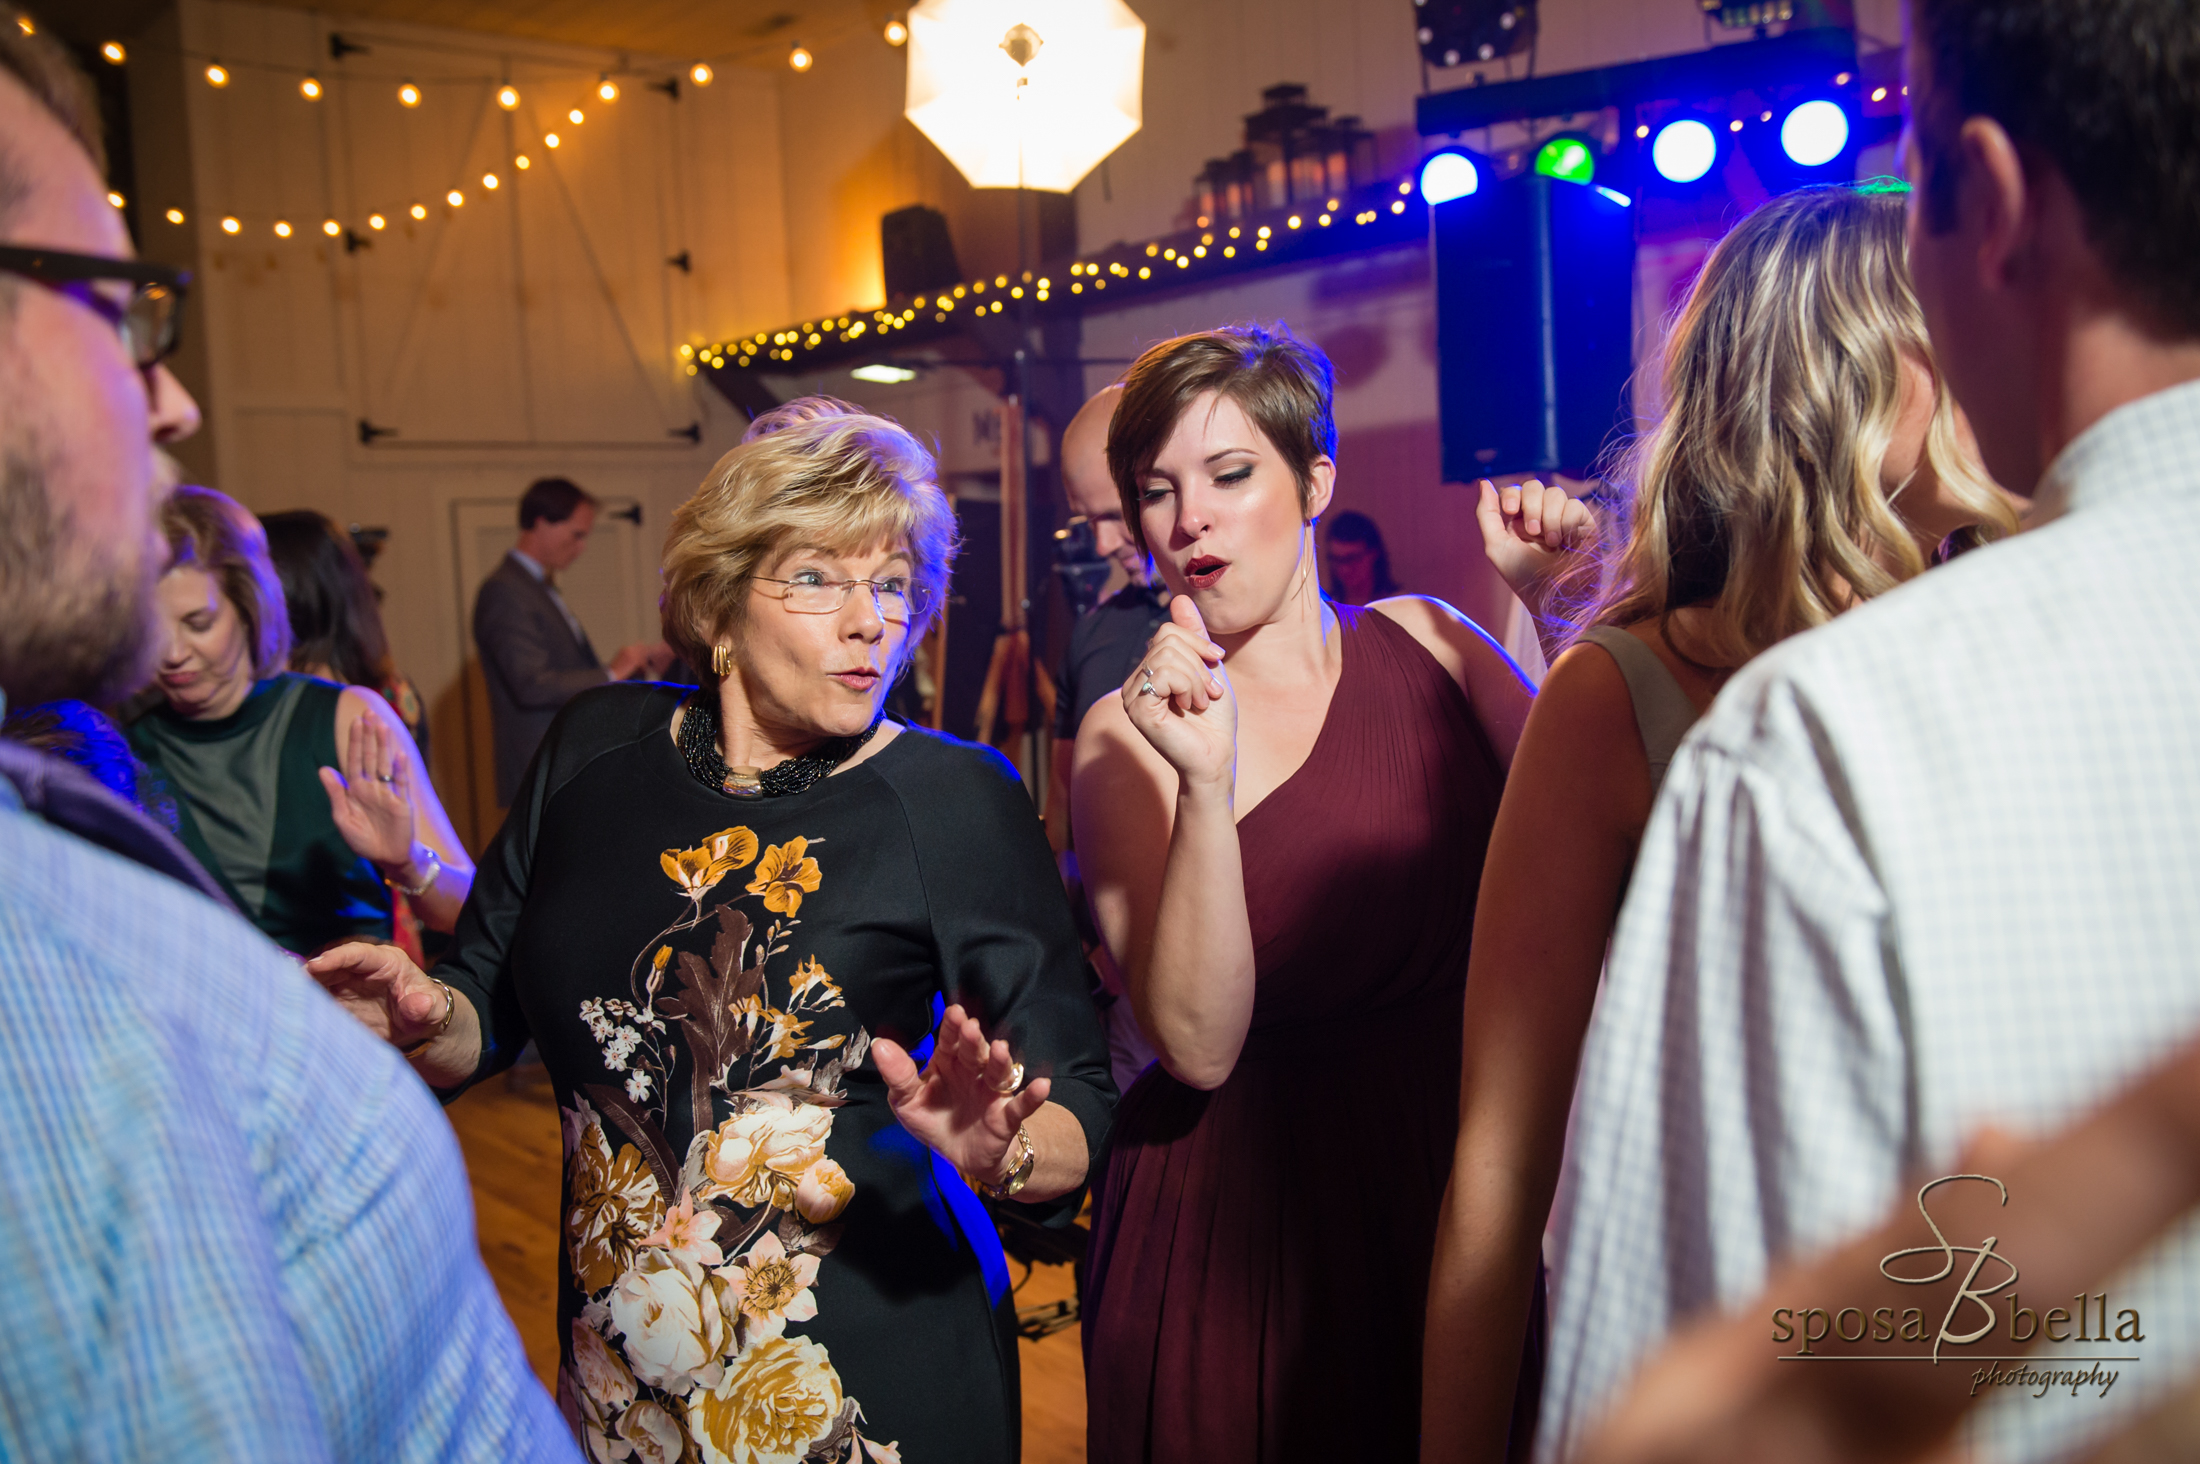 How could you not be out on the dance floor when you have Uptown Entertainment behind the DJ booth & a fun group like this!